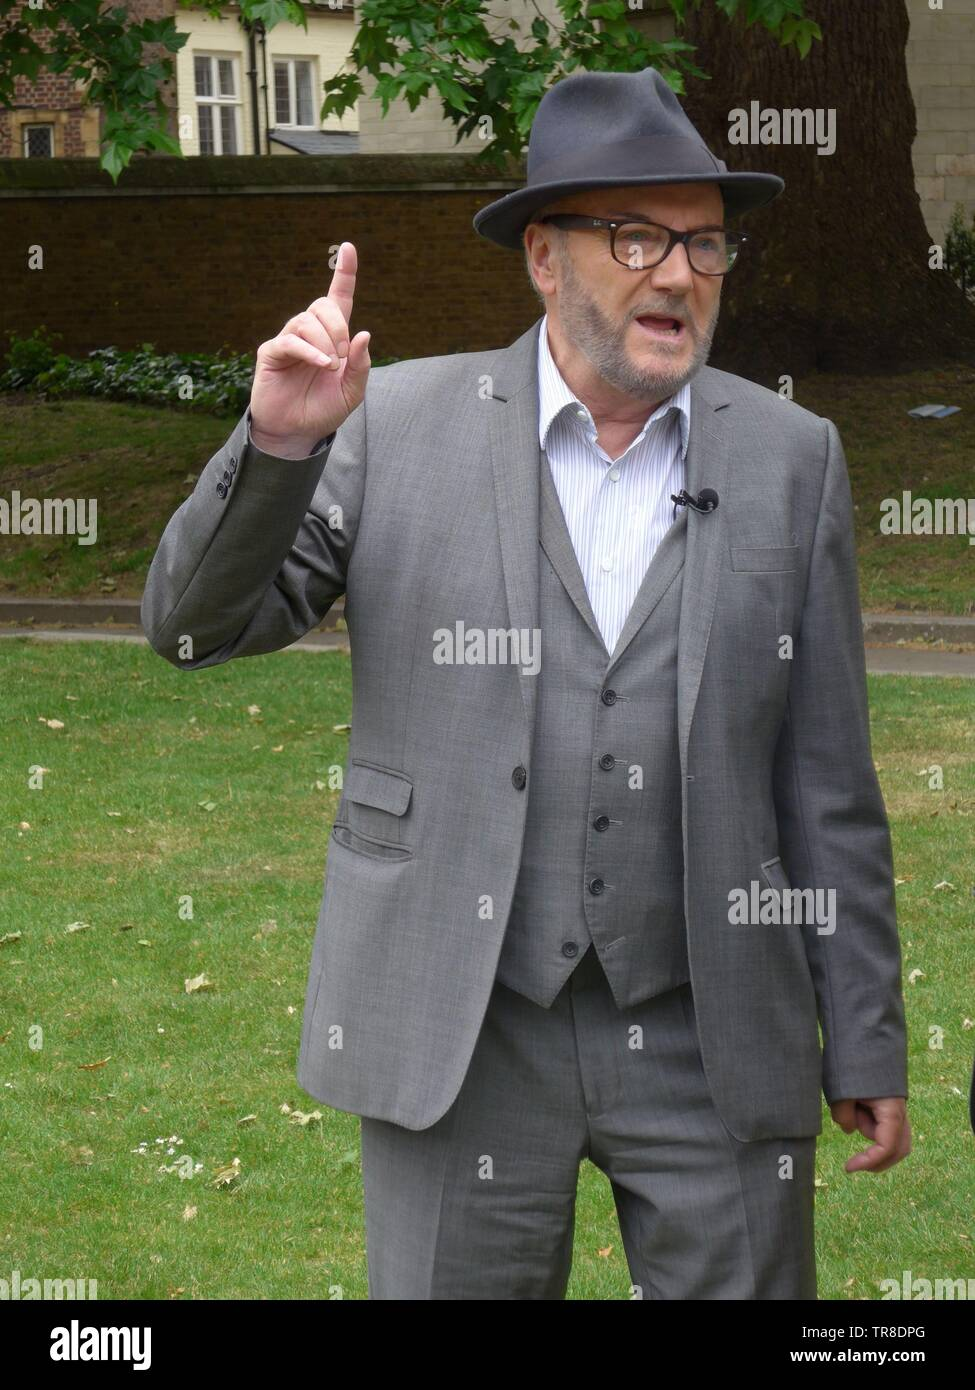 George Galloway in Old Place Yard, Westminster 30th May 2019 discussing Alistair Campbell's expulsion from the Labour Party, among other things. - Stock Image